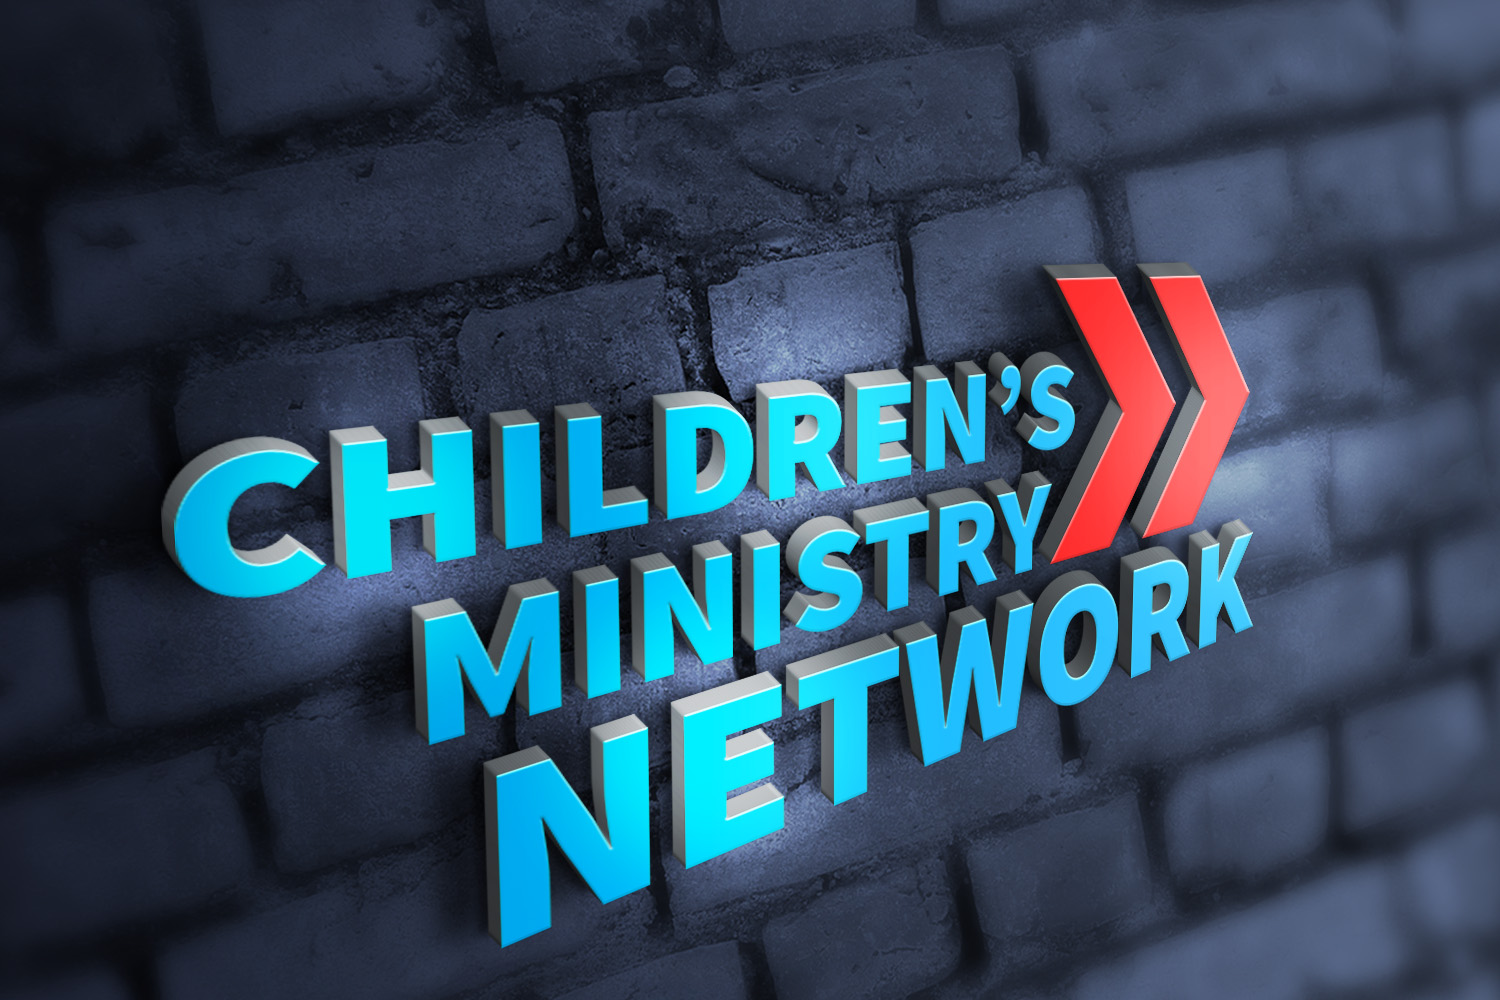 Childrens Ministry Network